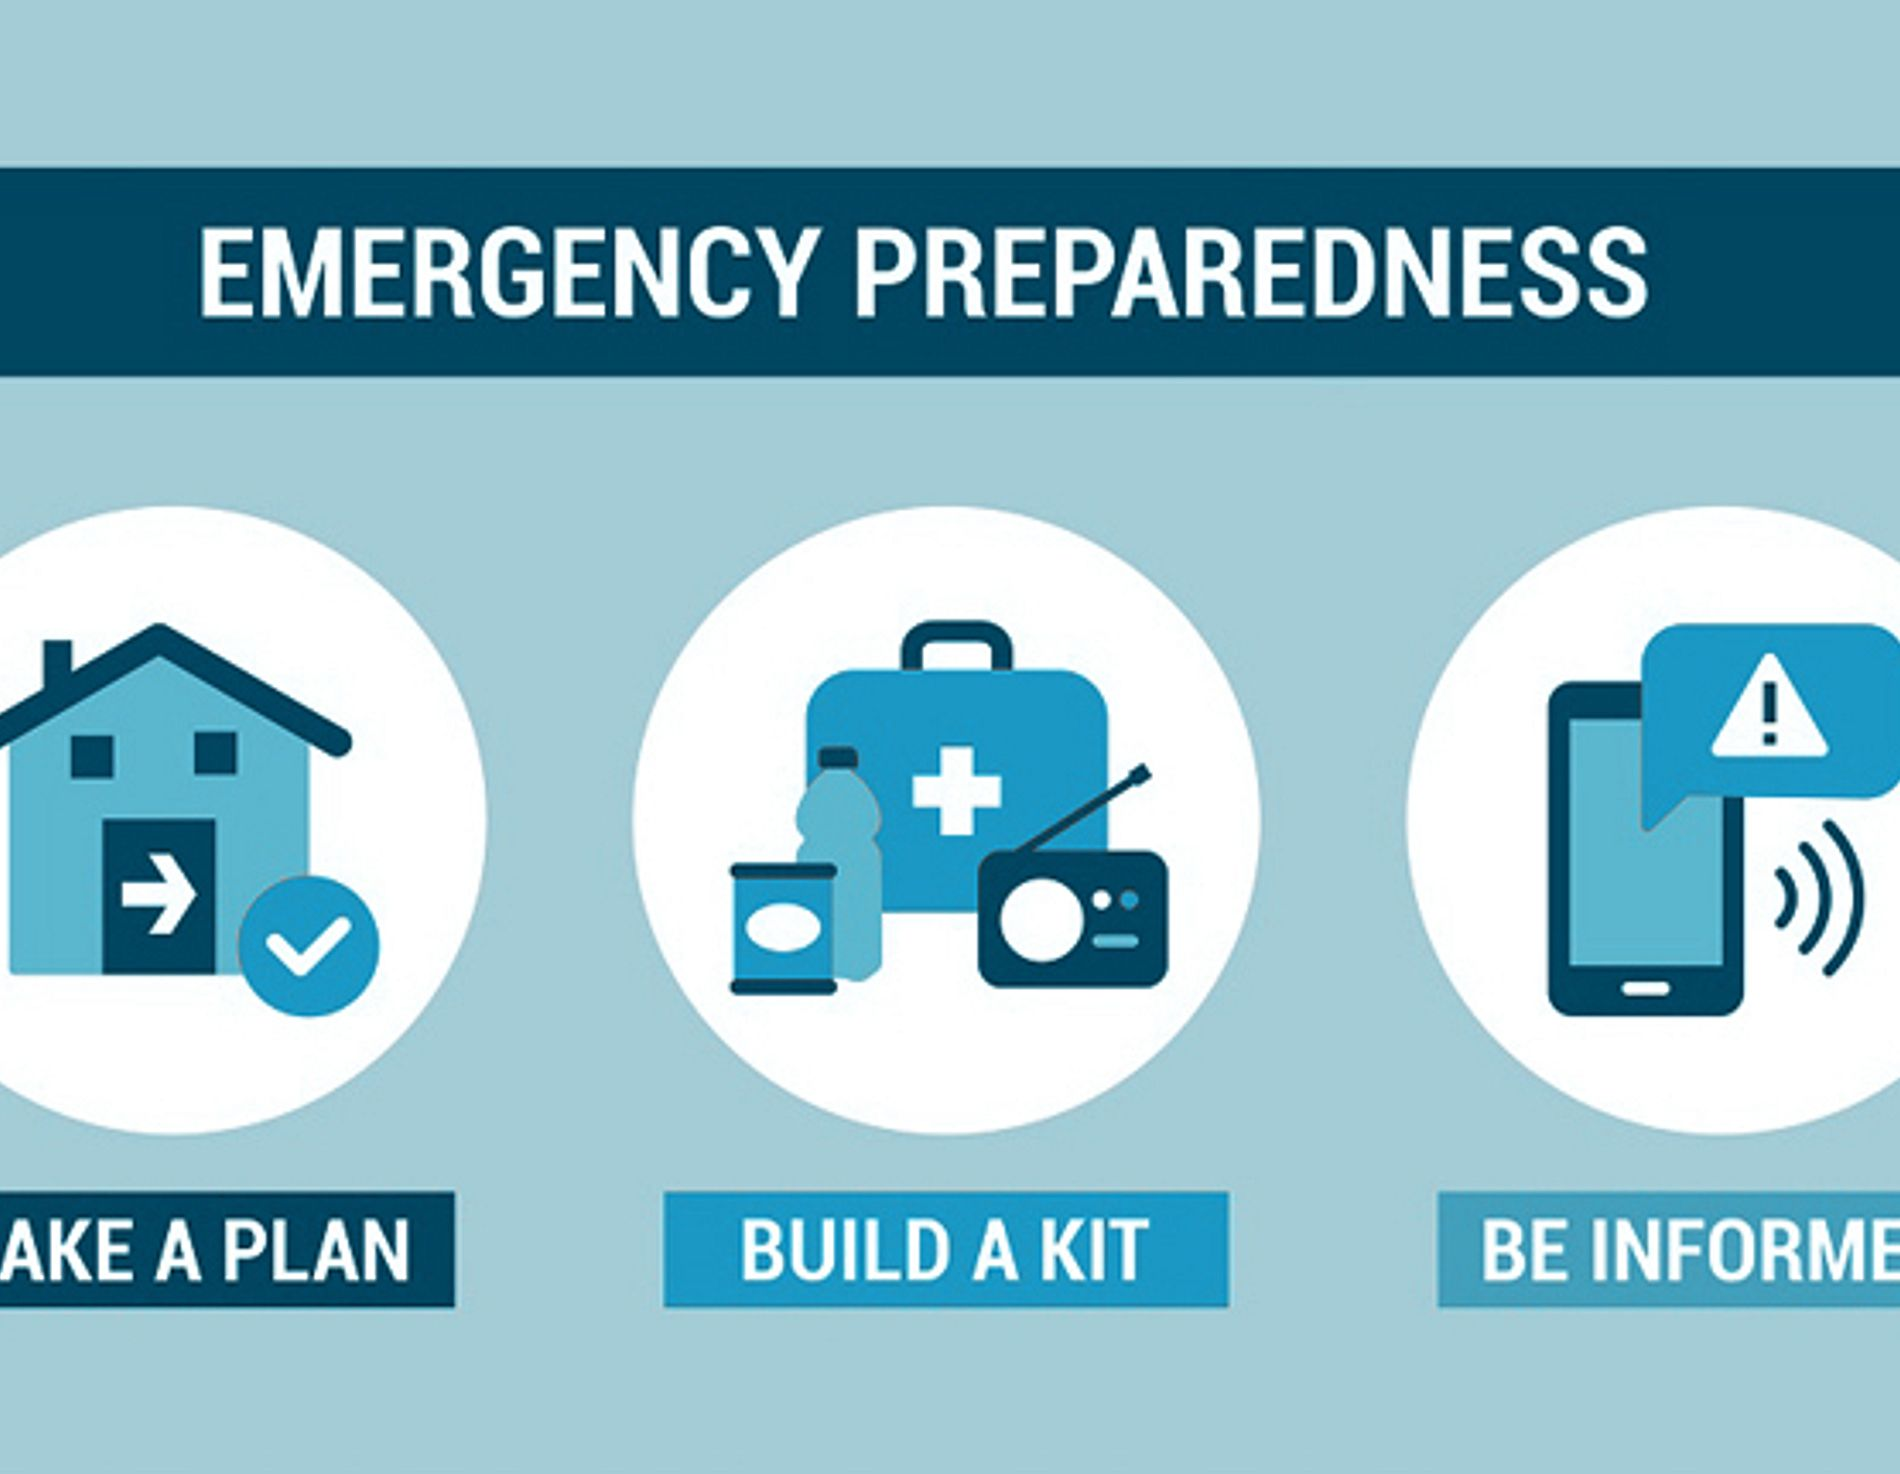 Icons depicting the steps in emergency preparedness